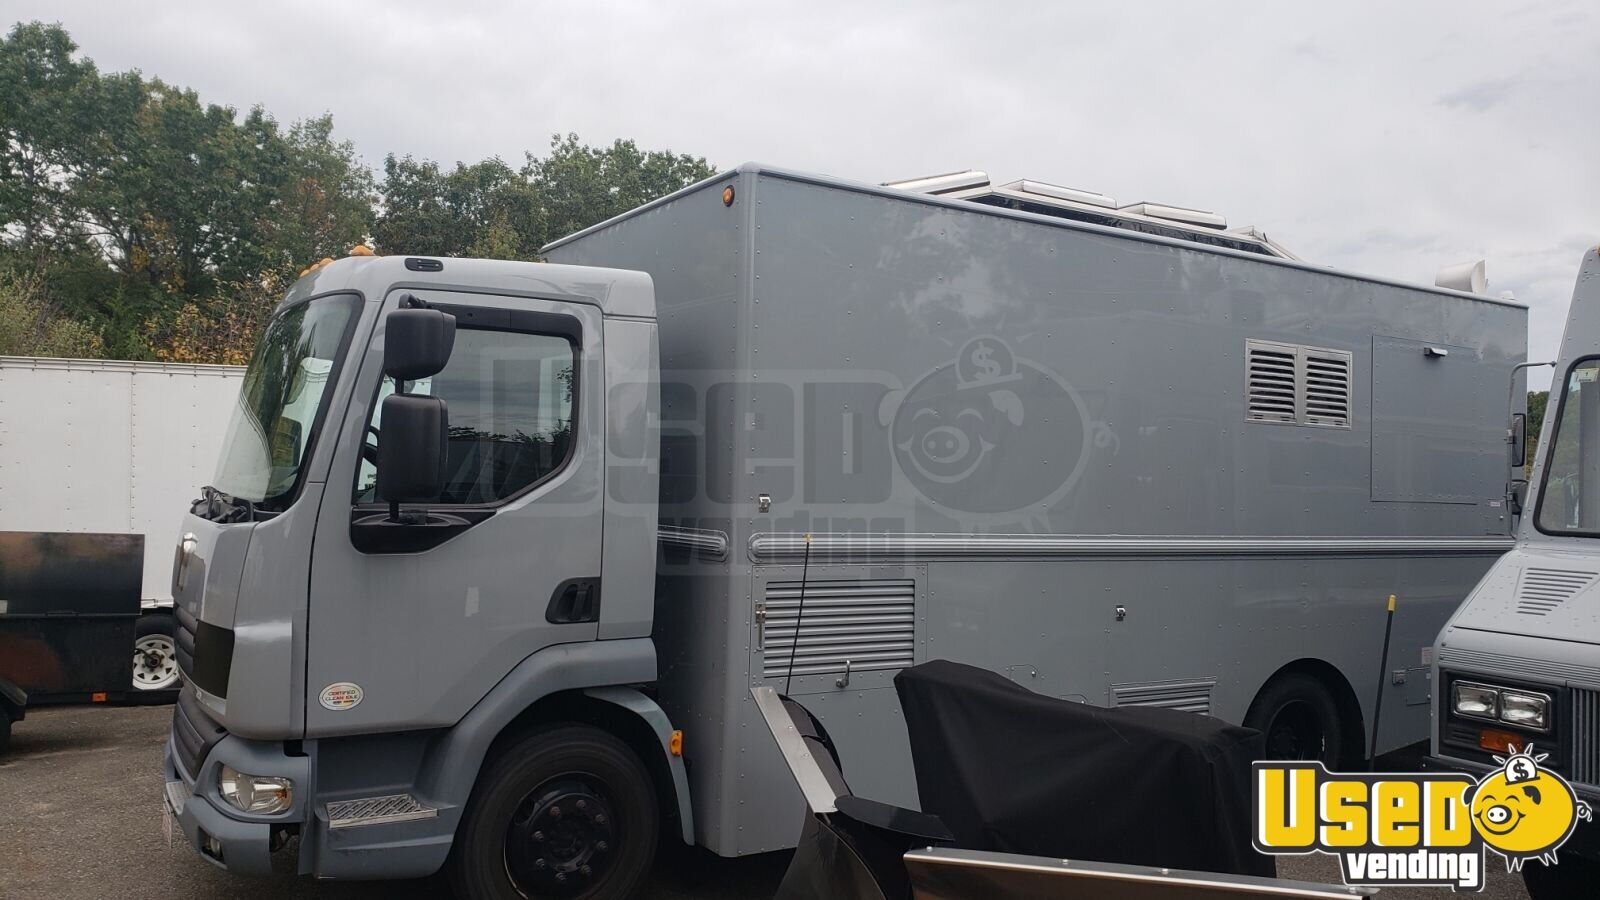 2014 K270 W/ Hivco Custom Body Kitchen Food Truck All-purpose Food Truck Massachusetts Diesel Engine for Sale - 1